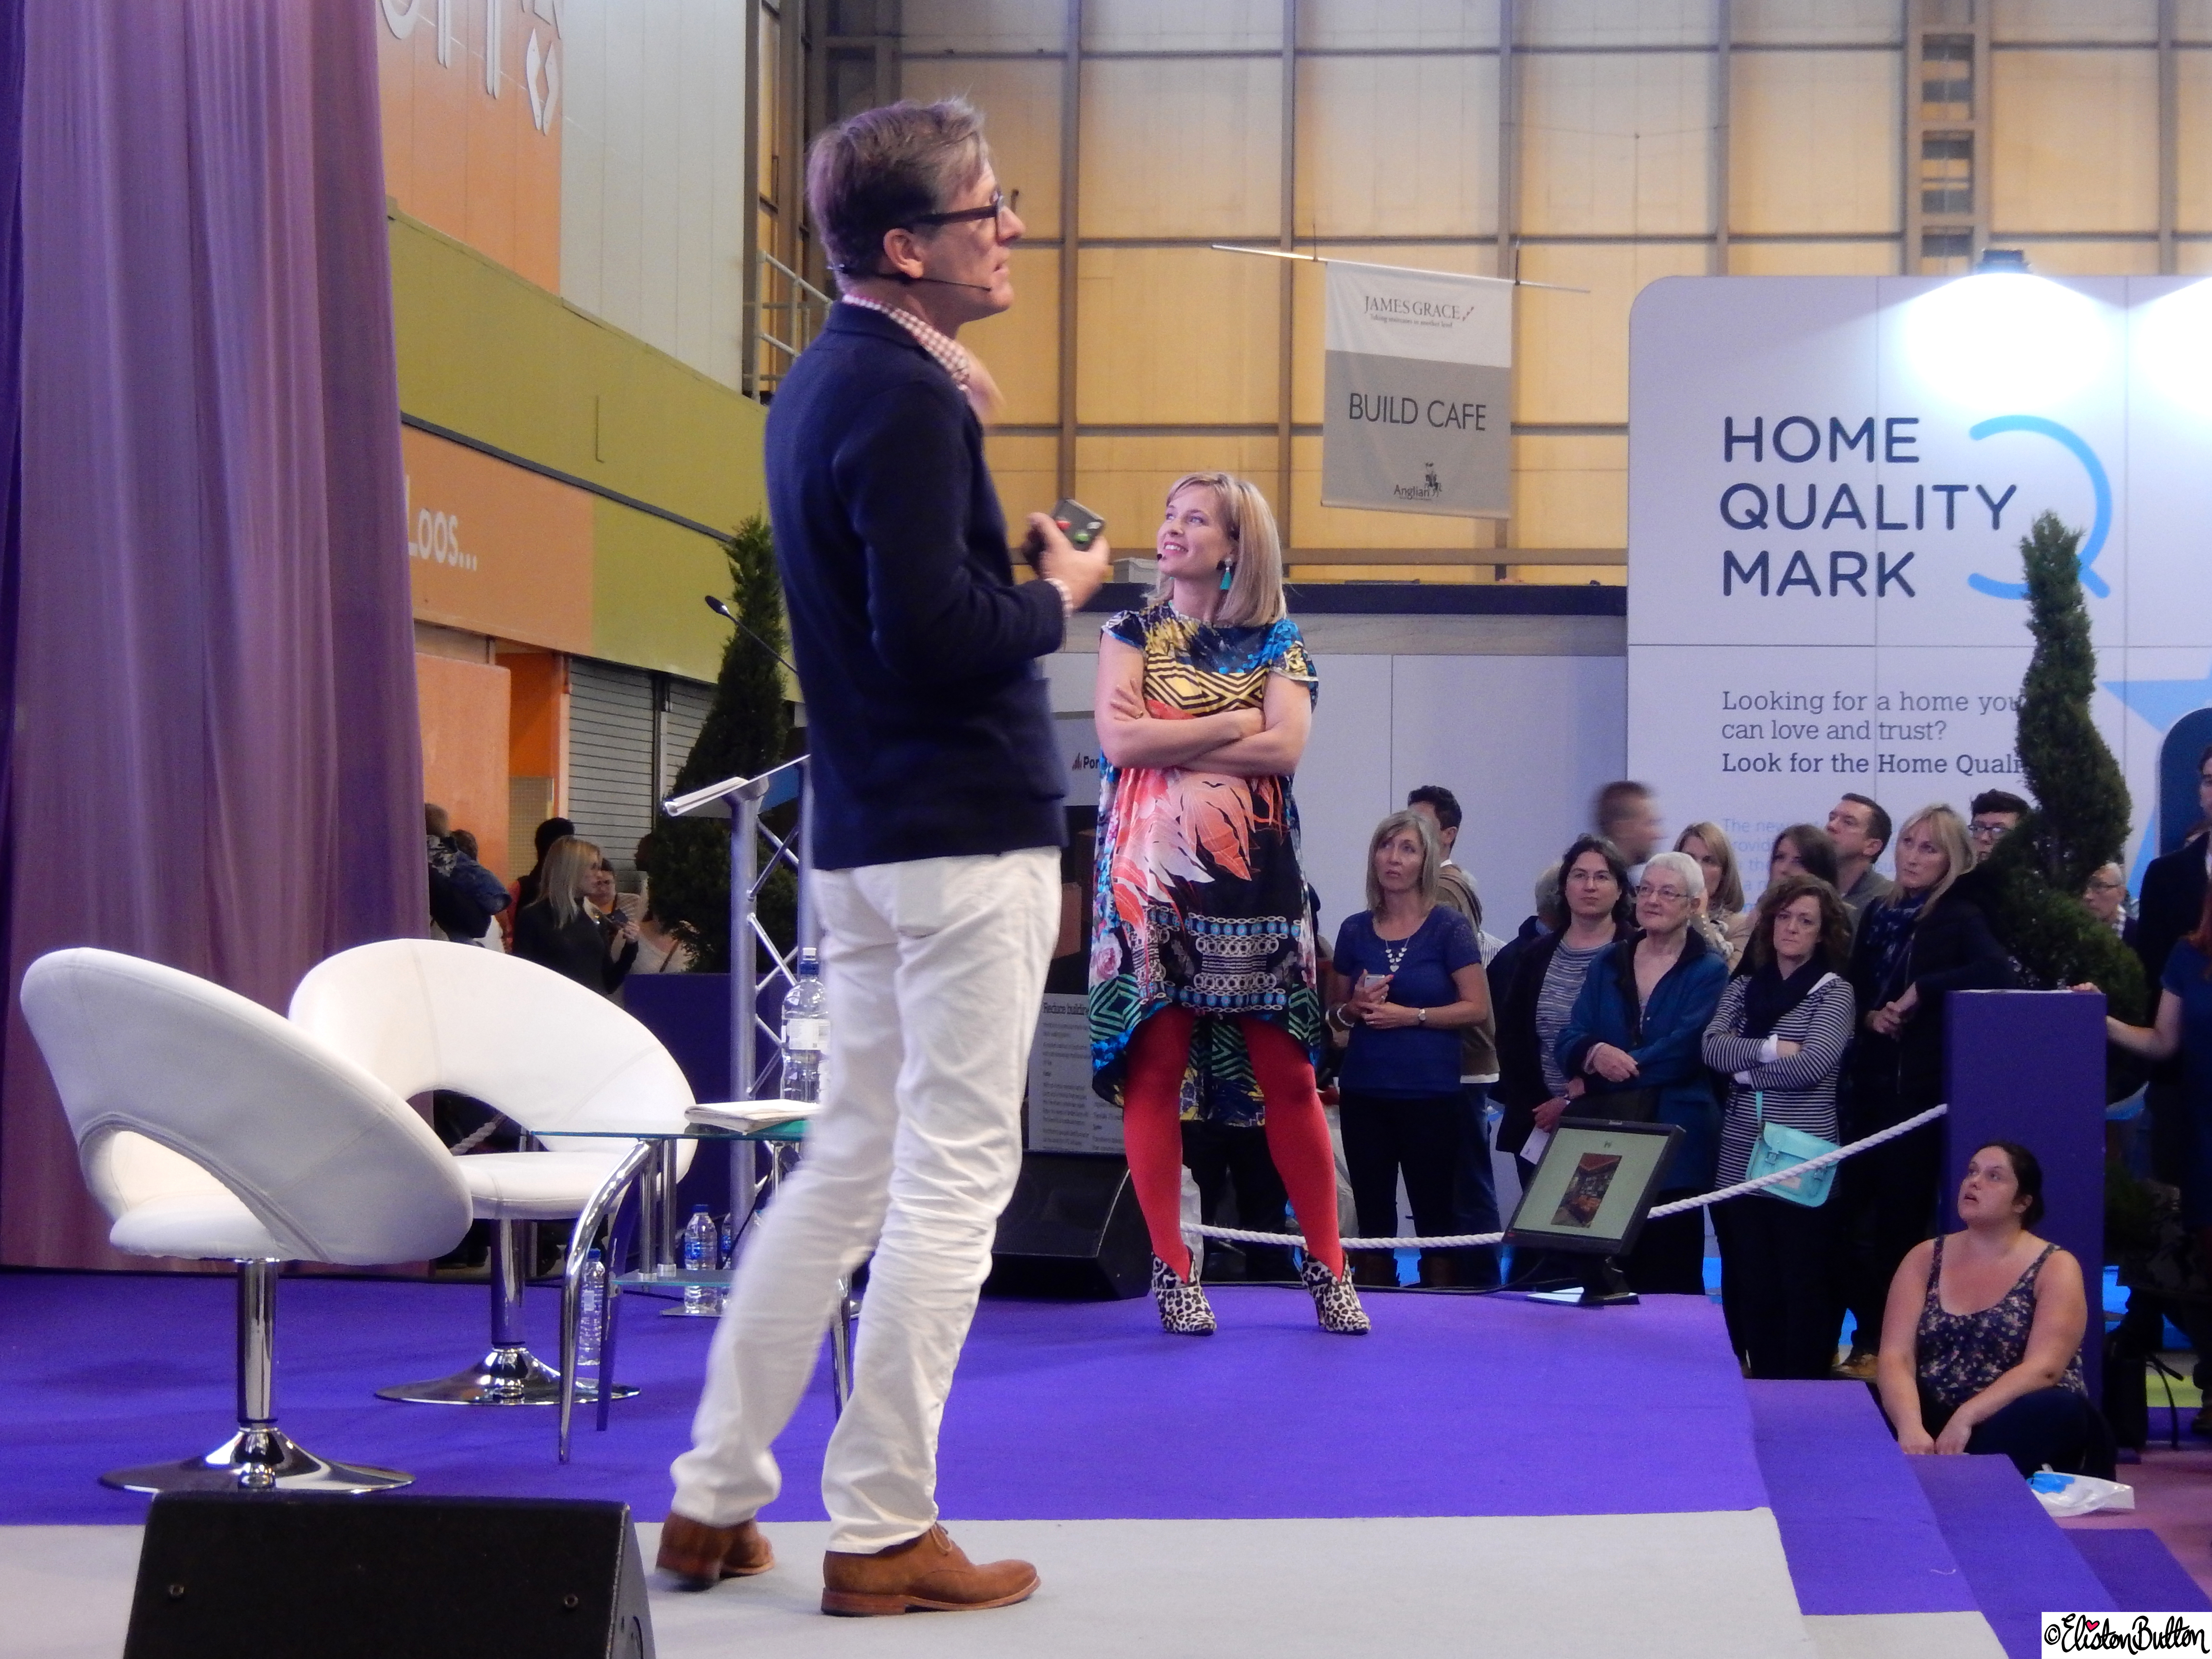 Dan Hopwood and Sophie Robinson from The Great Interior Design Challenge talking about Luxury for Less at Grand Designs Live - Grand Designs Live 2015 - Part One at www.elistonbutton.com - Eliston Button - That Crafty Kid – Art, Design, Craft & Adventure.